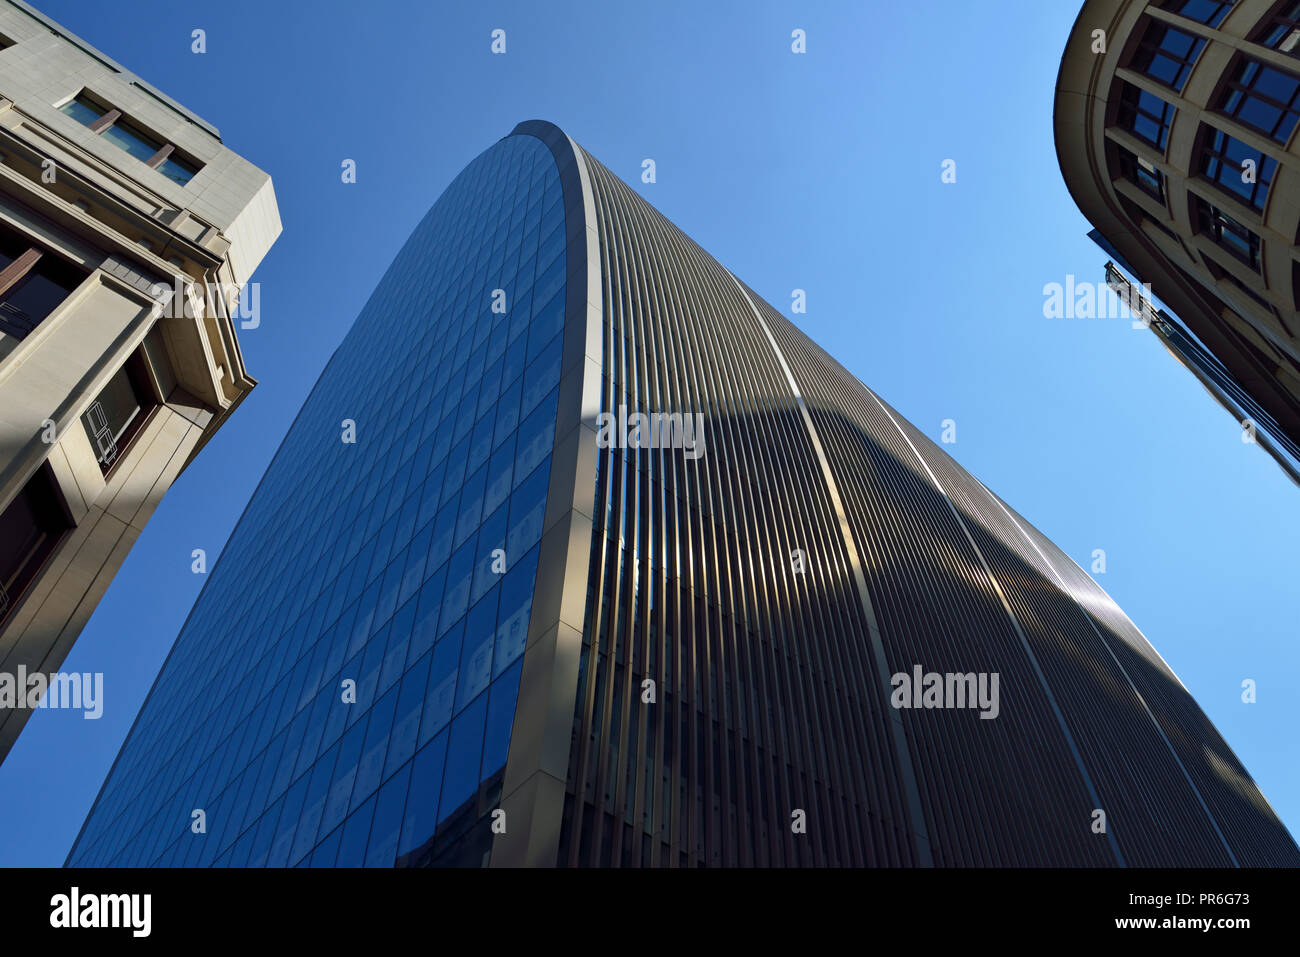 Can of Ham, 70 St Mary Axe, City of London. United Kingdom - Stock Image